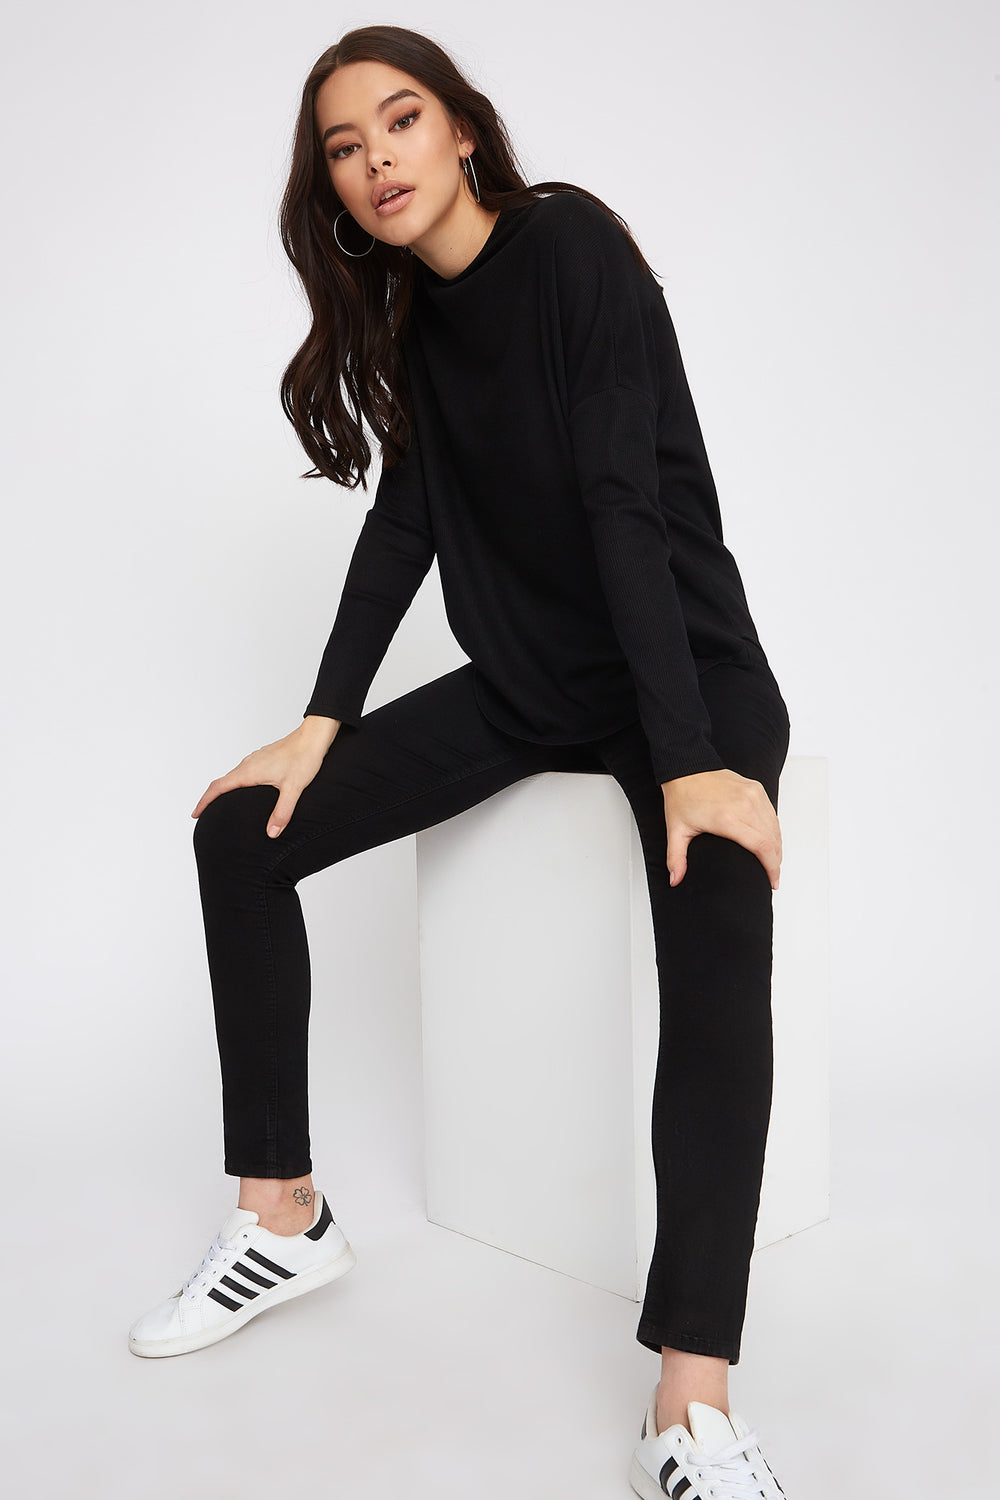 Waffle Knit Mock Neck Oversized Long Sleeve Black